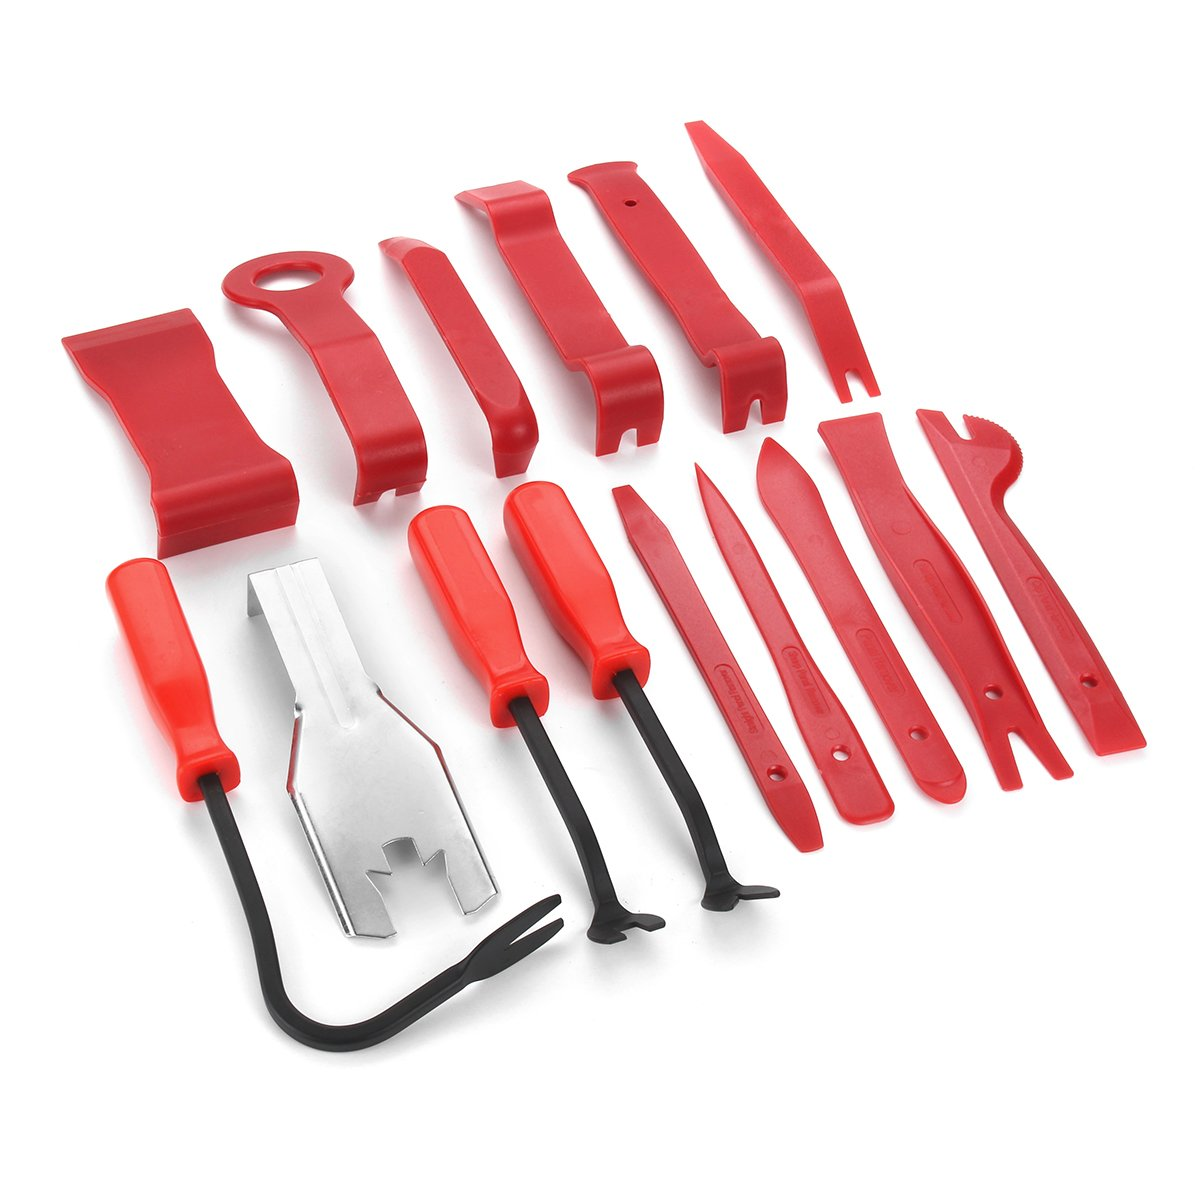 Fincos 15pcs Meter Door Molding Remover Panel Trim Clip Removal Tools Kit Red Set by Fincos (Image #2)